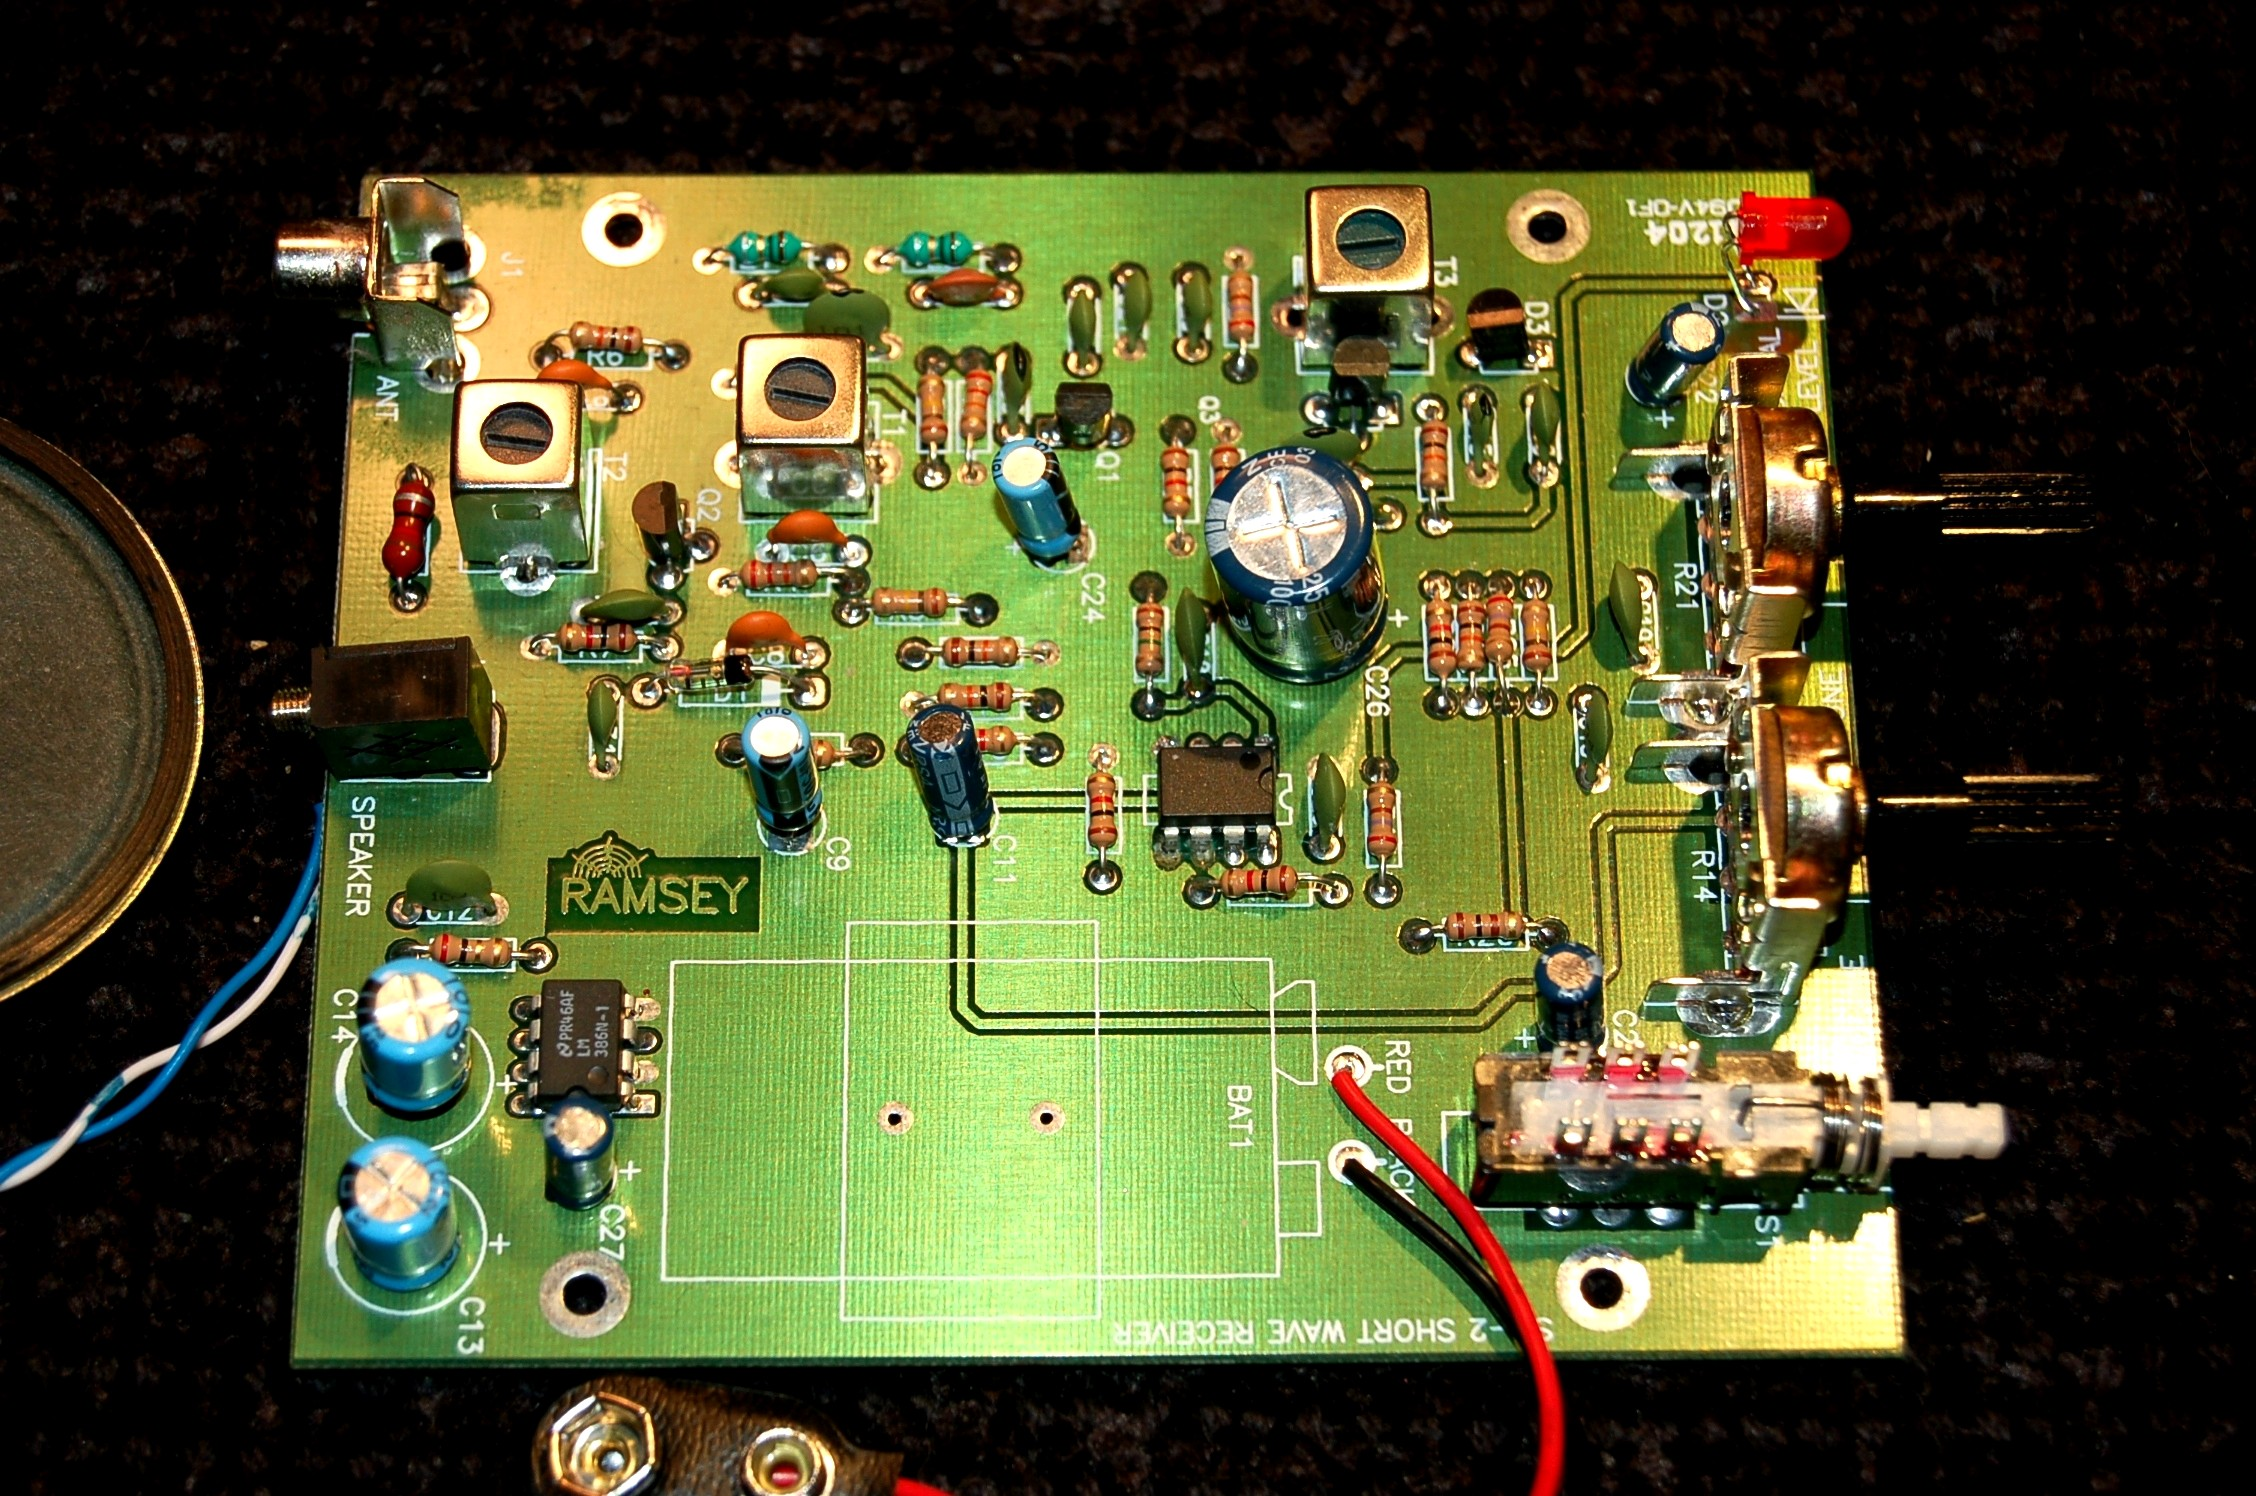 Kit Building Https Signal Booster Short Wave Radio Electronics Project In 1918 Armstrong Developed The Superhetrodyne Receiver That Incorporated First Local Oscillator And Intermediate Frequency Modules